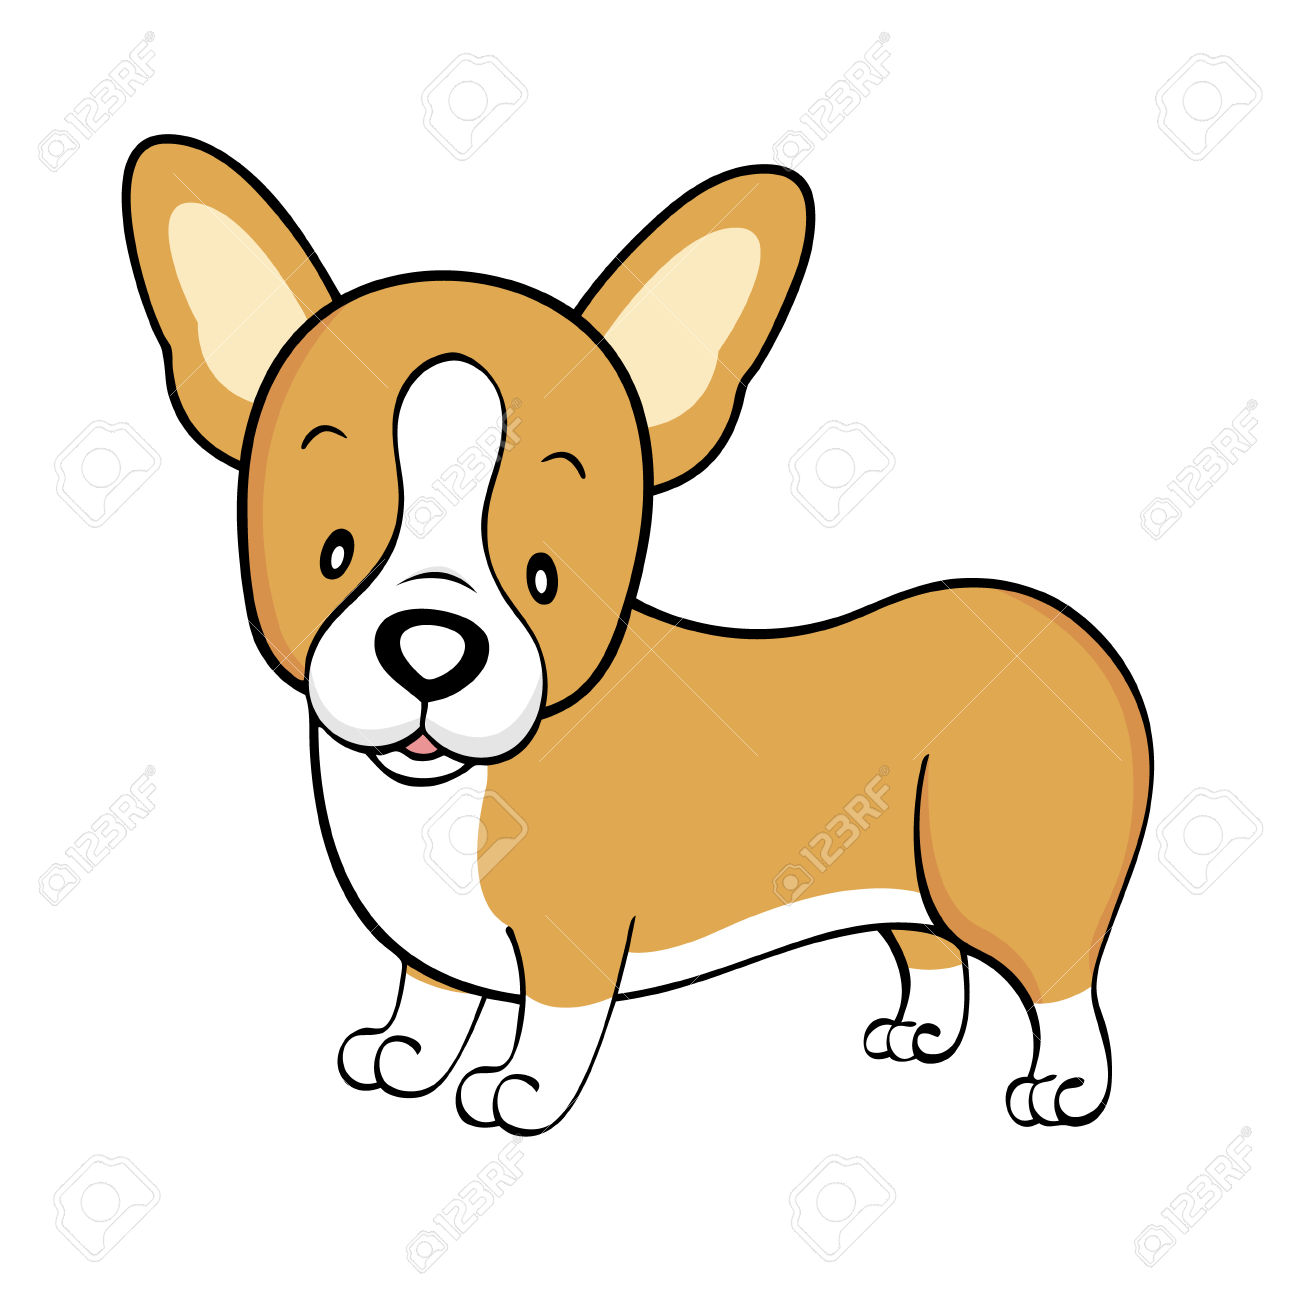 Welsh Corgi Isolated Royalty Free Cliparts, Vectors, And Stock.